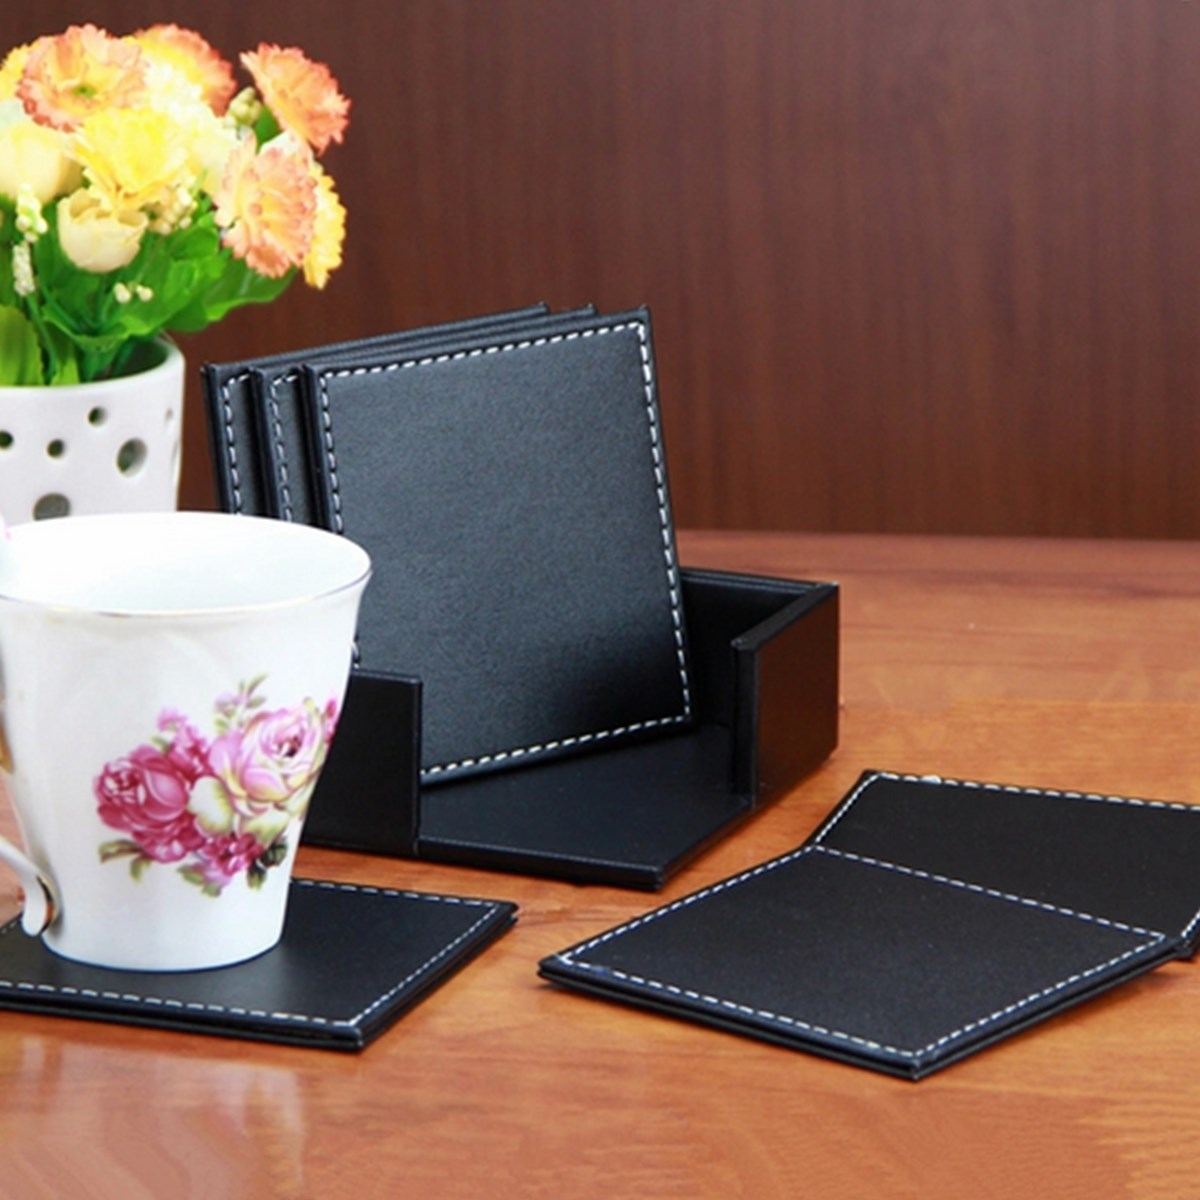 6pcs/lot Wholesale Price New Arrival <font><b>Double</b></font> <font><b>Deck</b></font> Black <font><b>Leather</b></font> Placemat <font><b>Coasters</b></font> of <font><b>Cup</b></font> Mat Pad <font><b>PU</b></font> <font><b>Leather</b></font> For Home Decoration